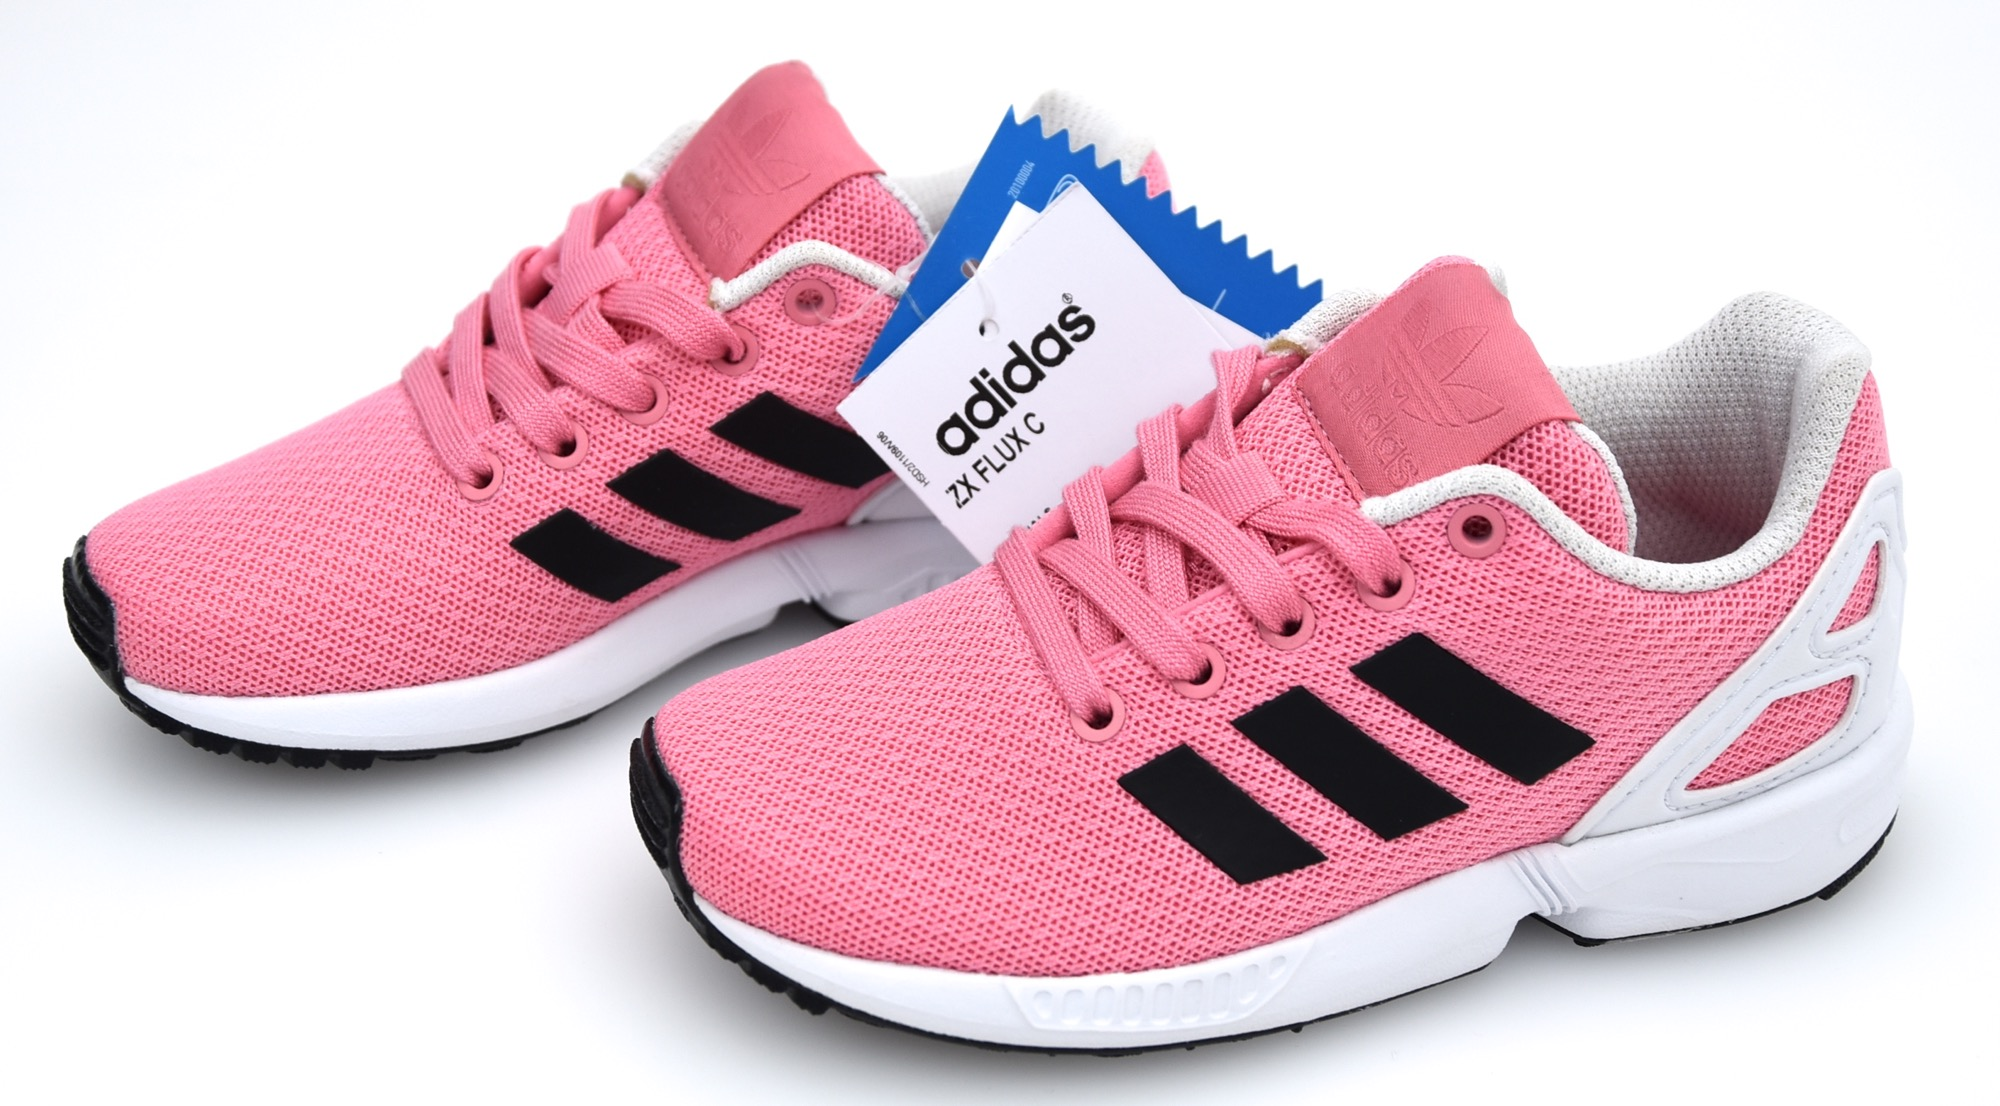 best authentic 30137 d4b82 Details about ADIDAS JUNIOR BOY GIRL SNEAKER SHOES CASUAL FREE TIME BB2421  - BB2420 ZX FLUX C